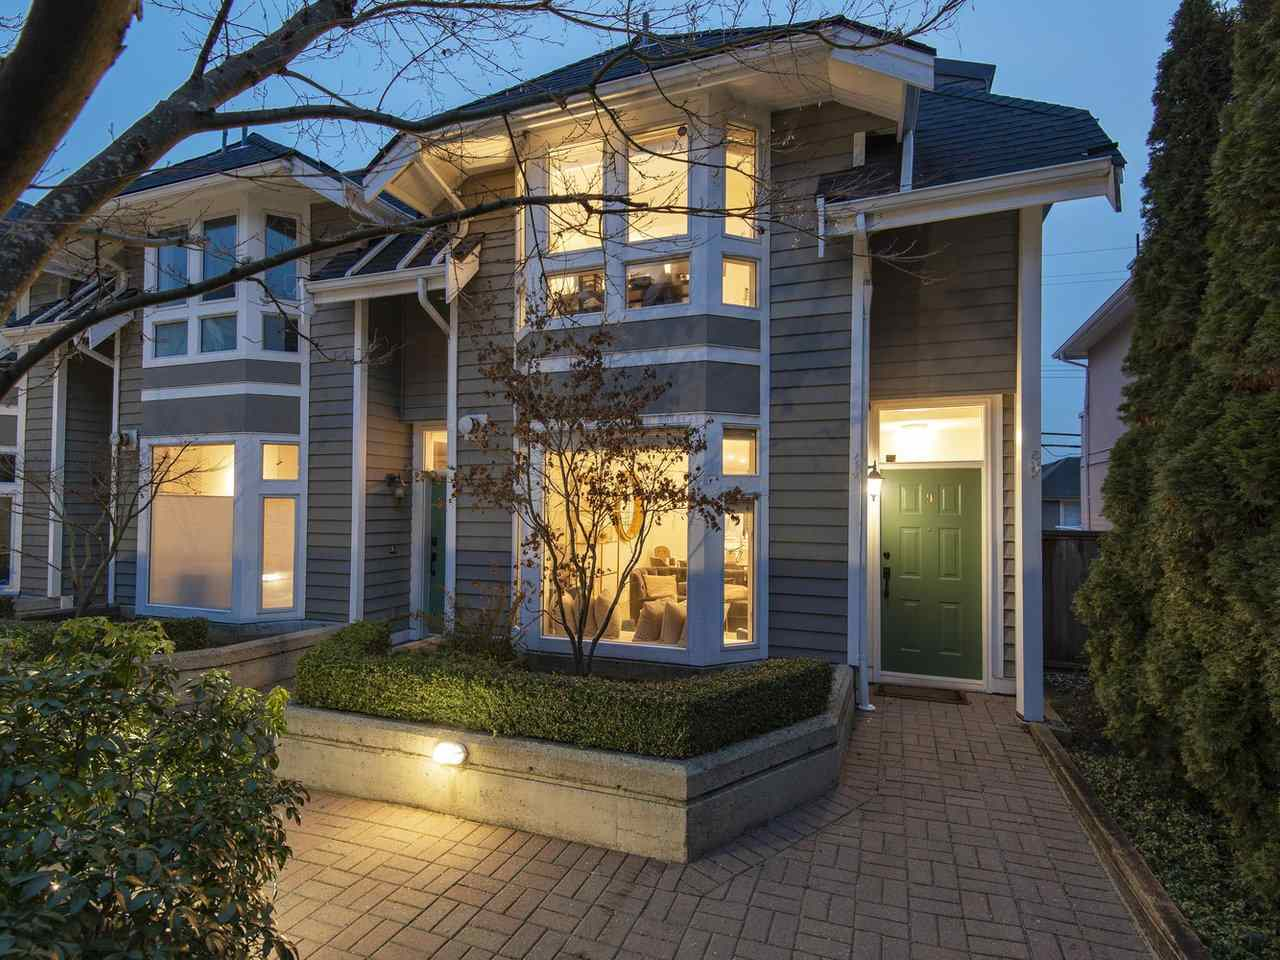 9 233 E 6TH STREET - Lower Lonsdale Townhouse for sale, 2 Bedrooms (R2542522) - #1